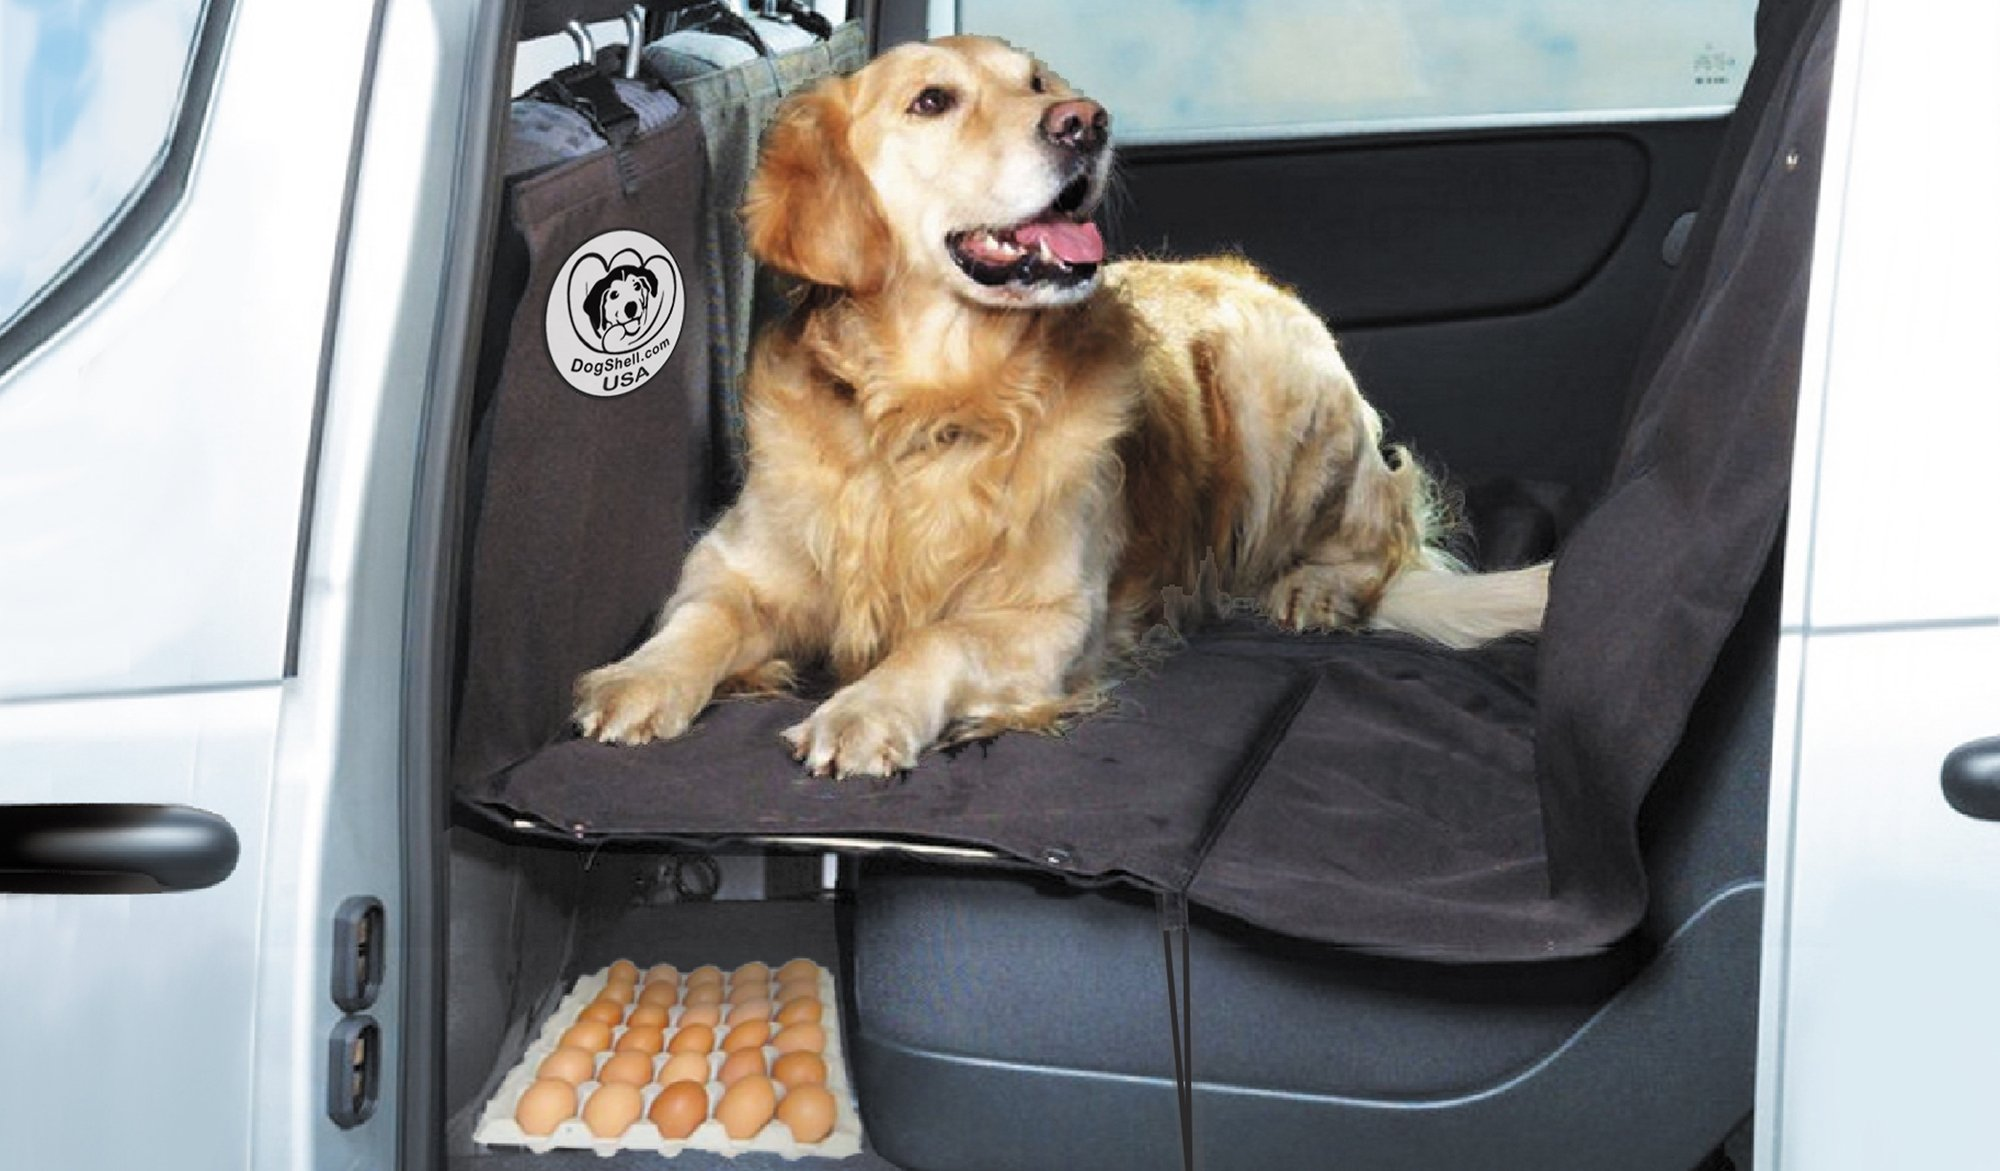 DogShell Car/SUV Dog Pet Heavy-Duty Back Seat Cover Extended Platform Bridge